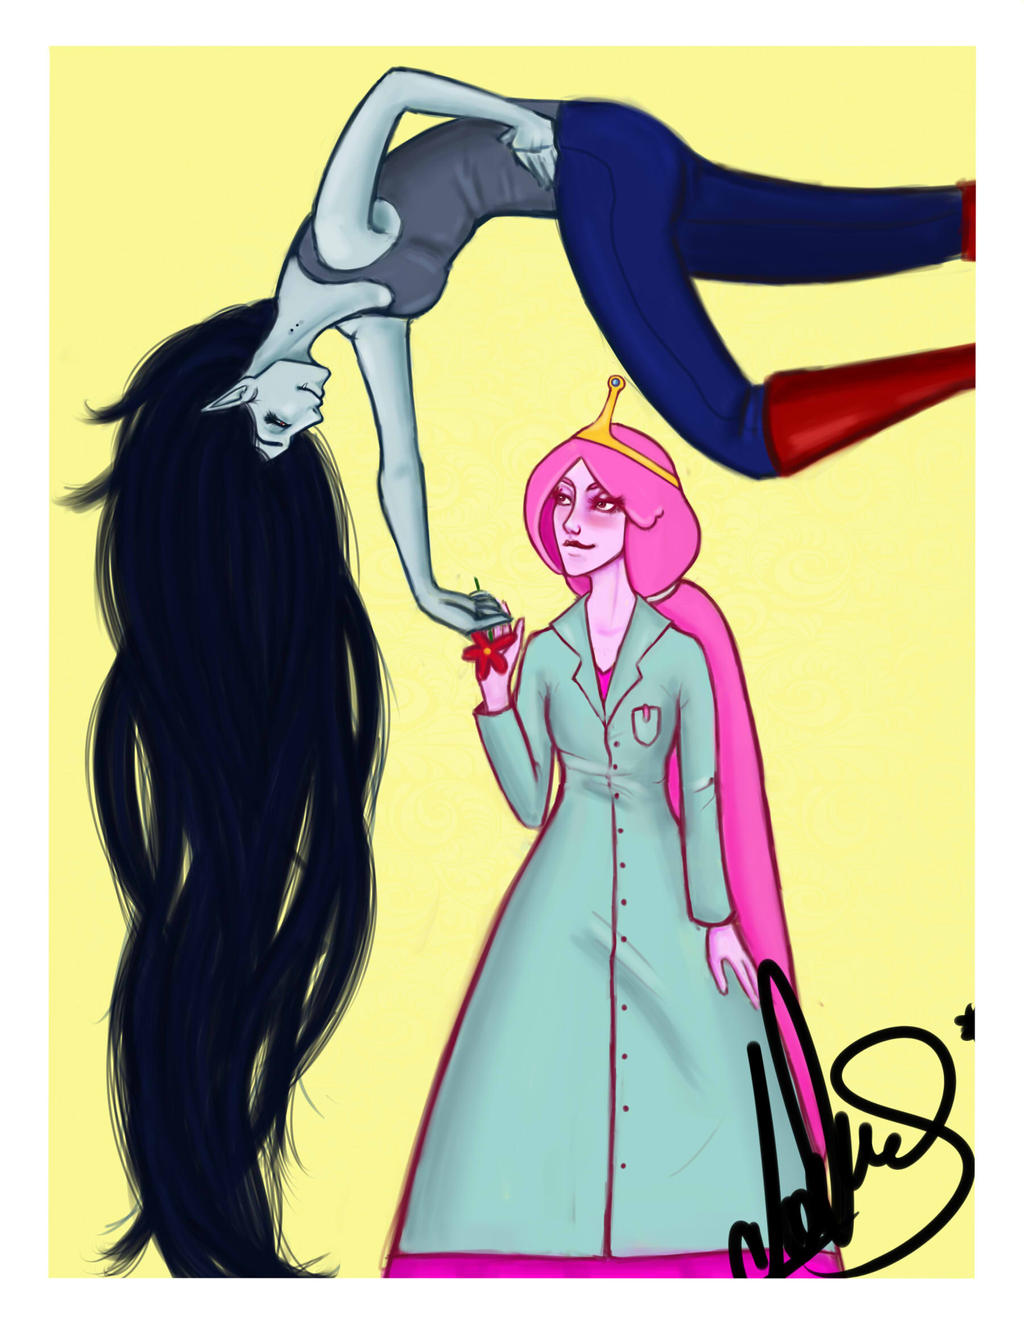 Pb And Marceline by candiass on DeviantArt